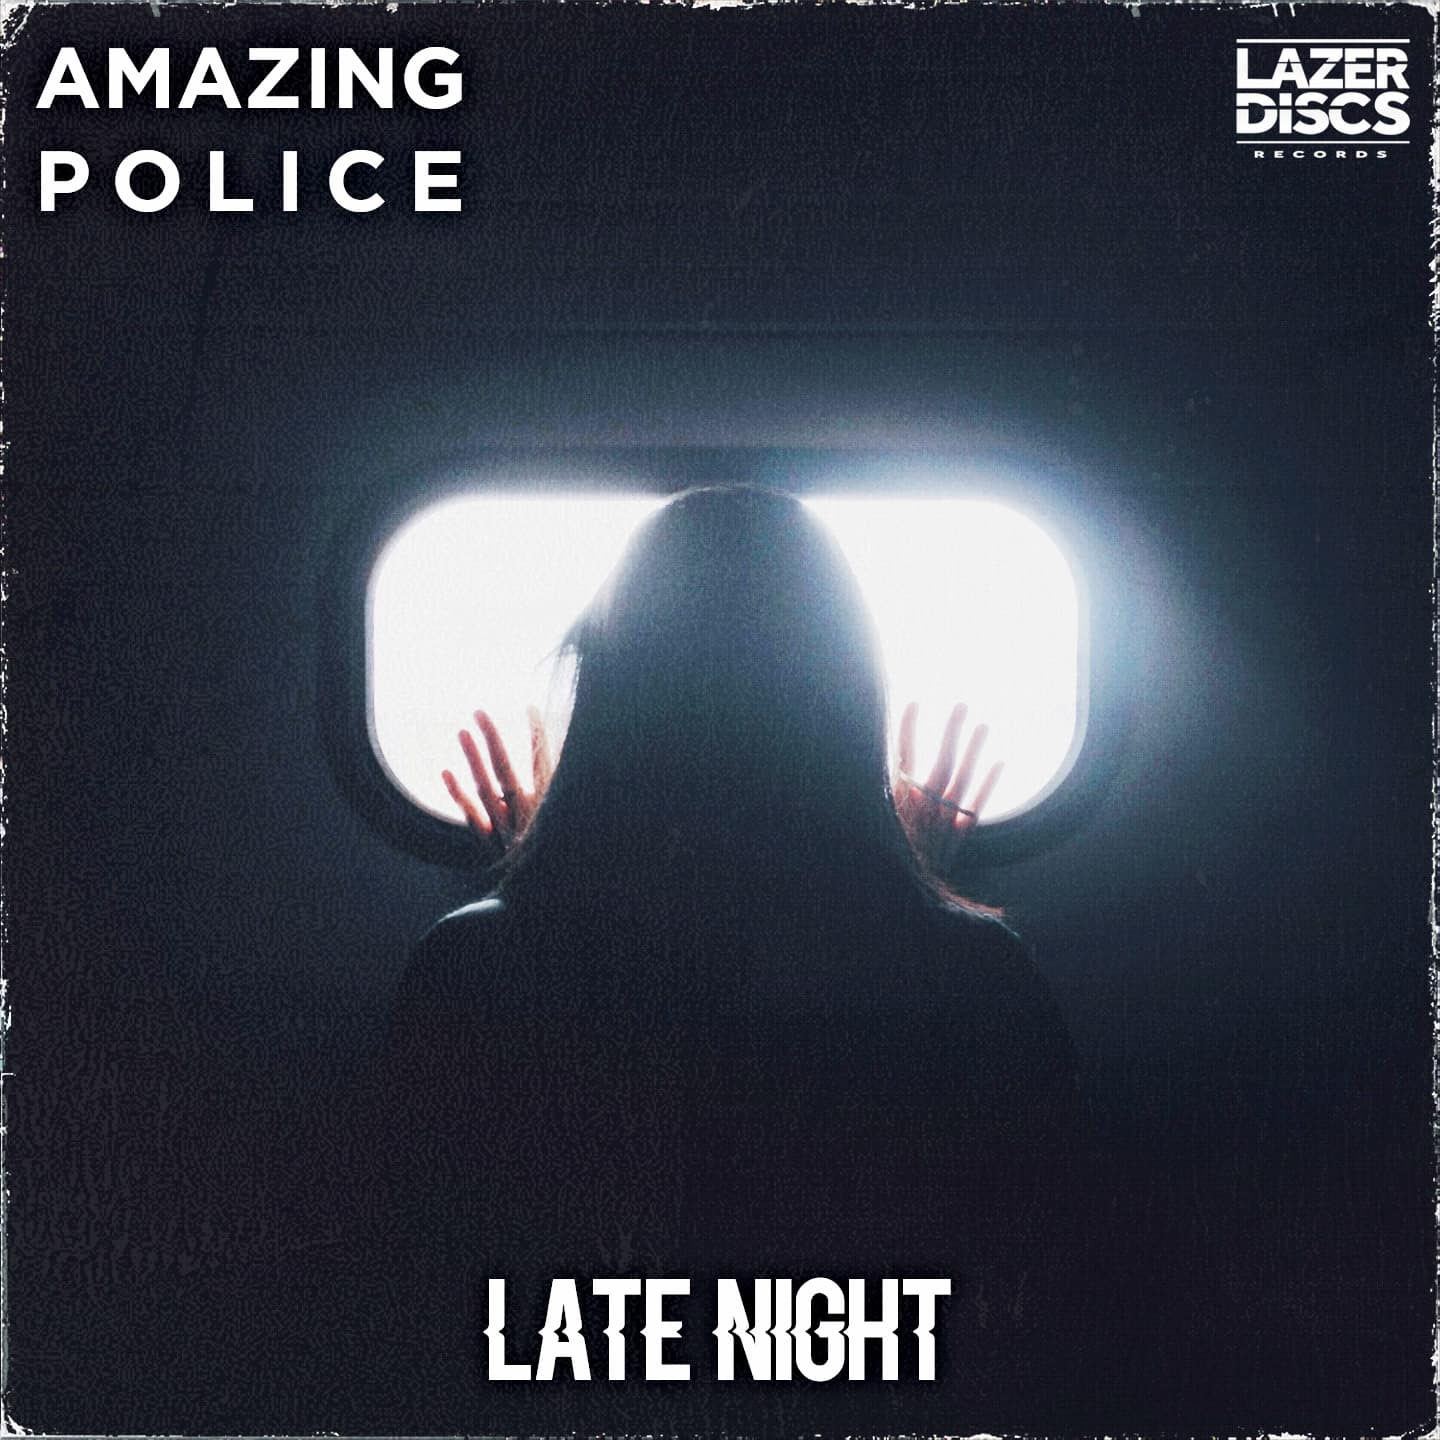 amazing police - late night synthwave